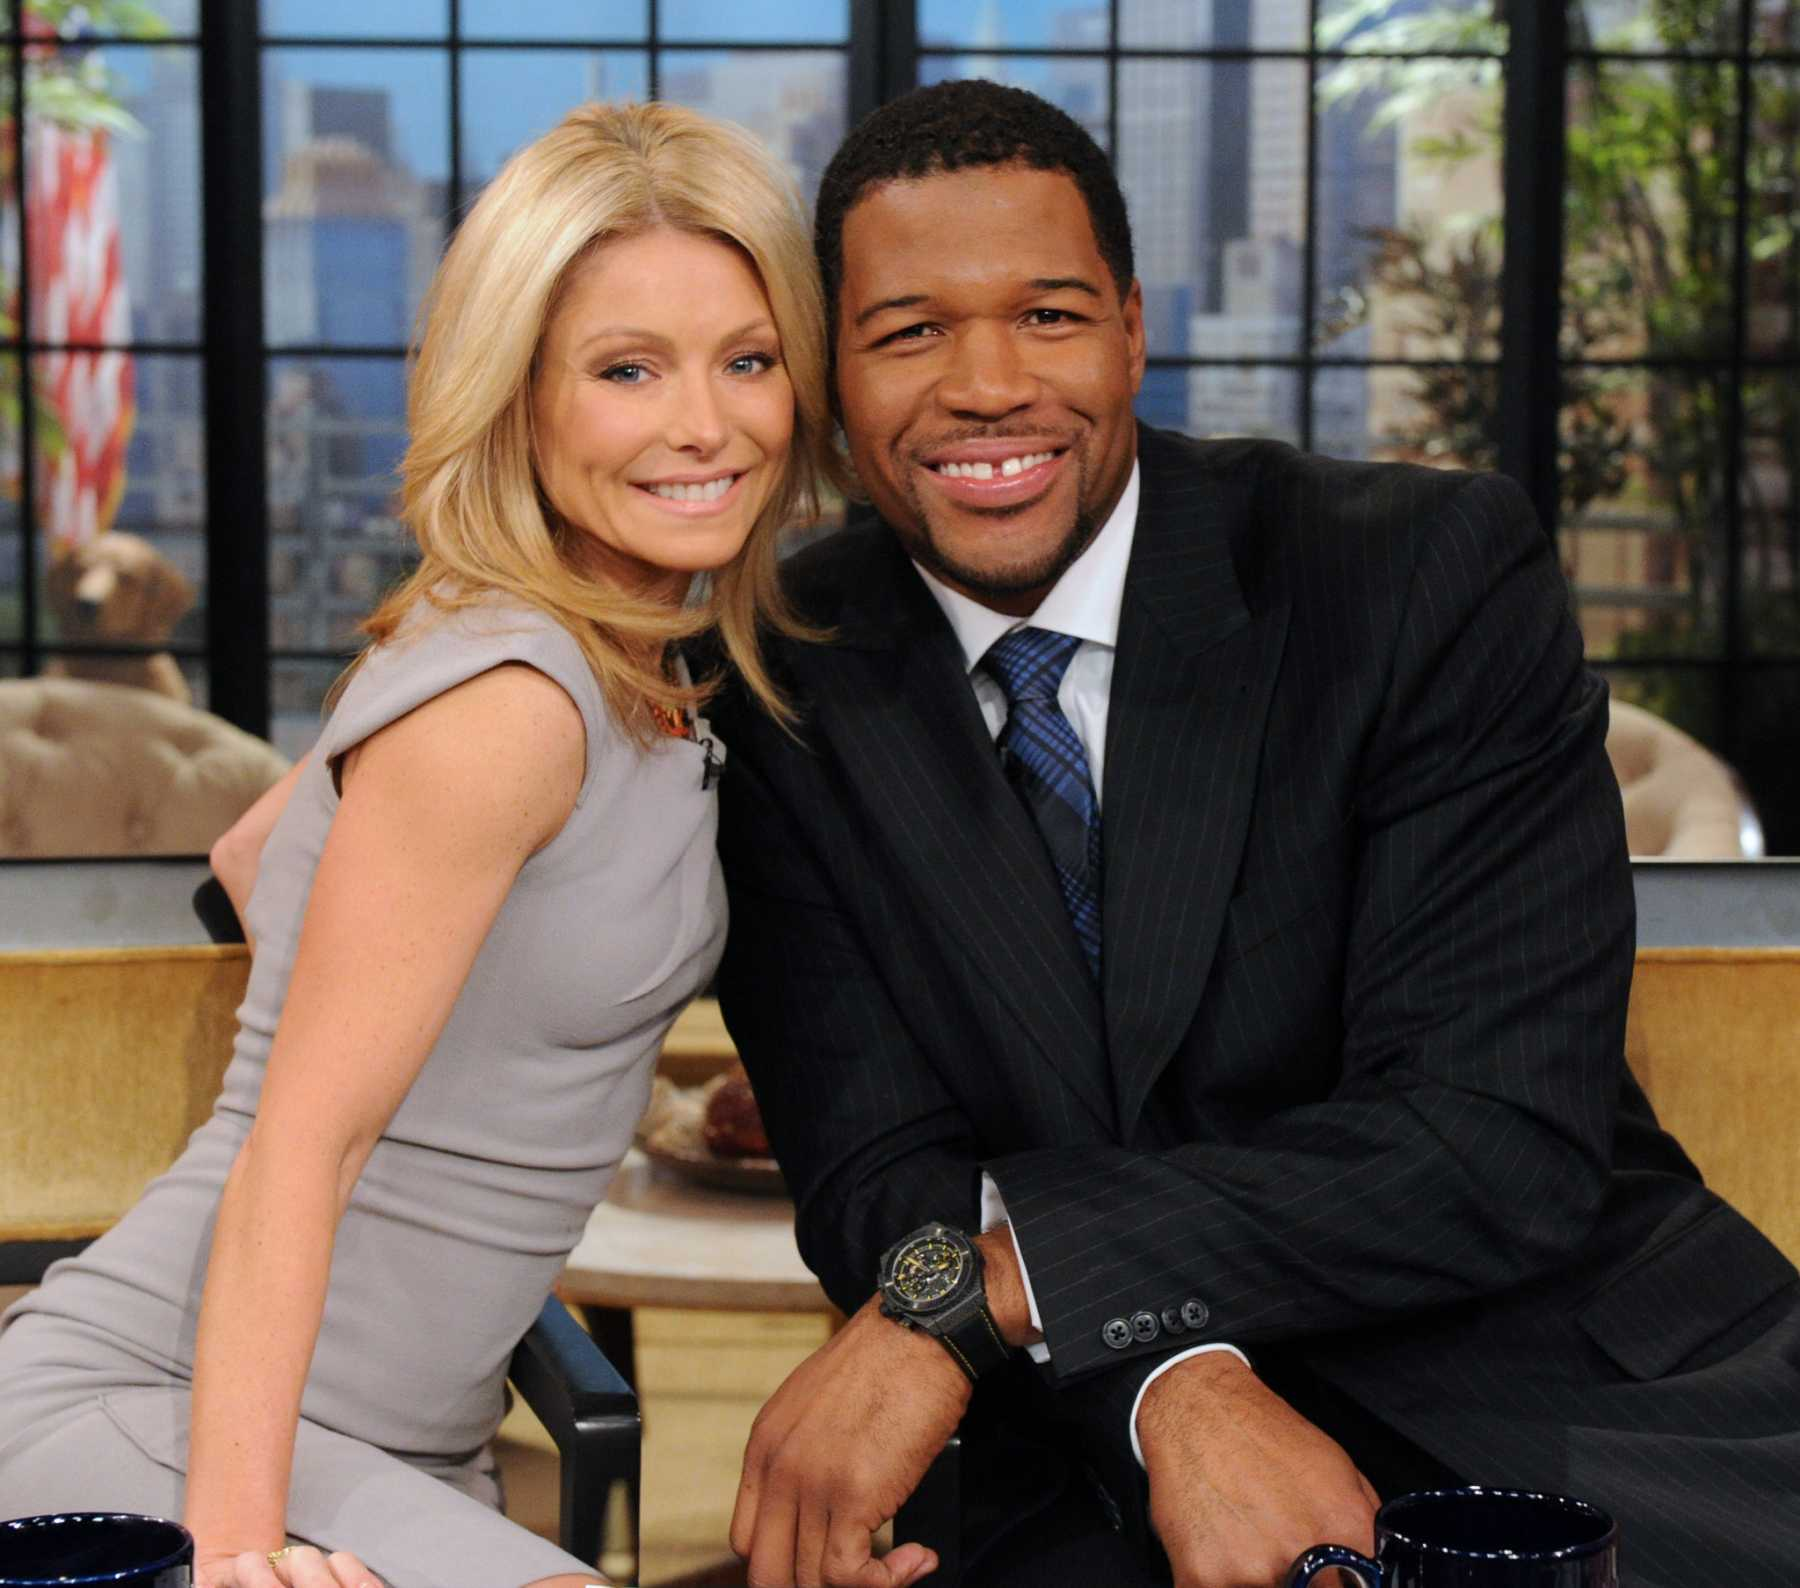 Michael Strahan Moving To GMA, Kelly Ripa 'Blindsided' | Michael Strahan